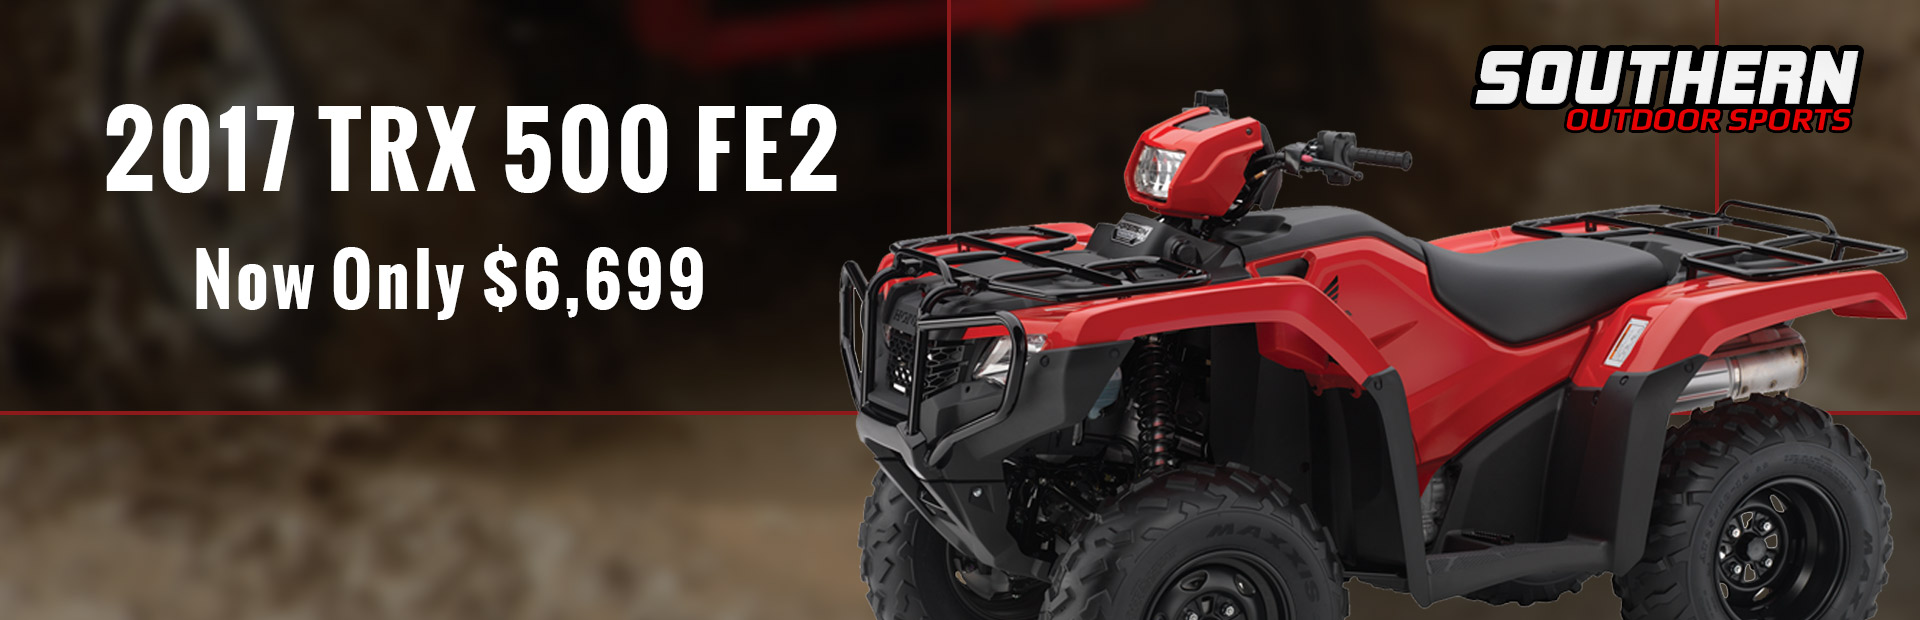 The 2017 Honda TRX 500 FE2 is now only $6,699!